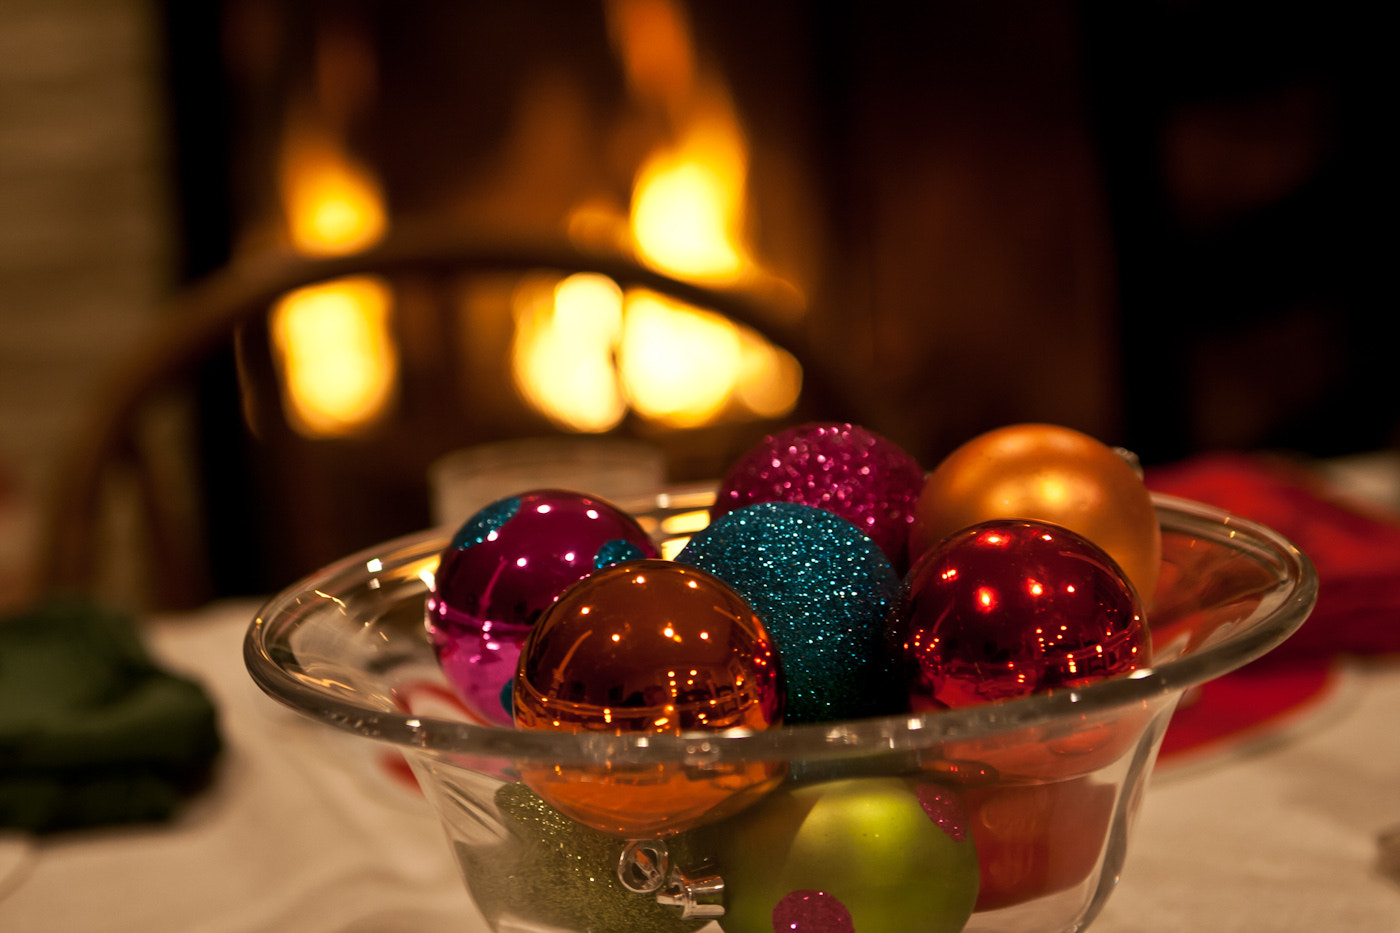 Photograph Christmas by Ray Thomas on 500px